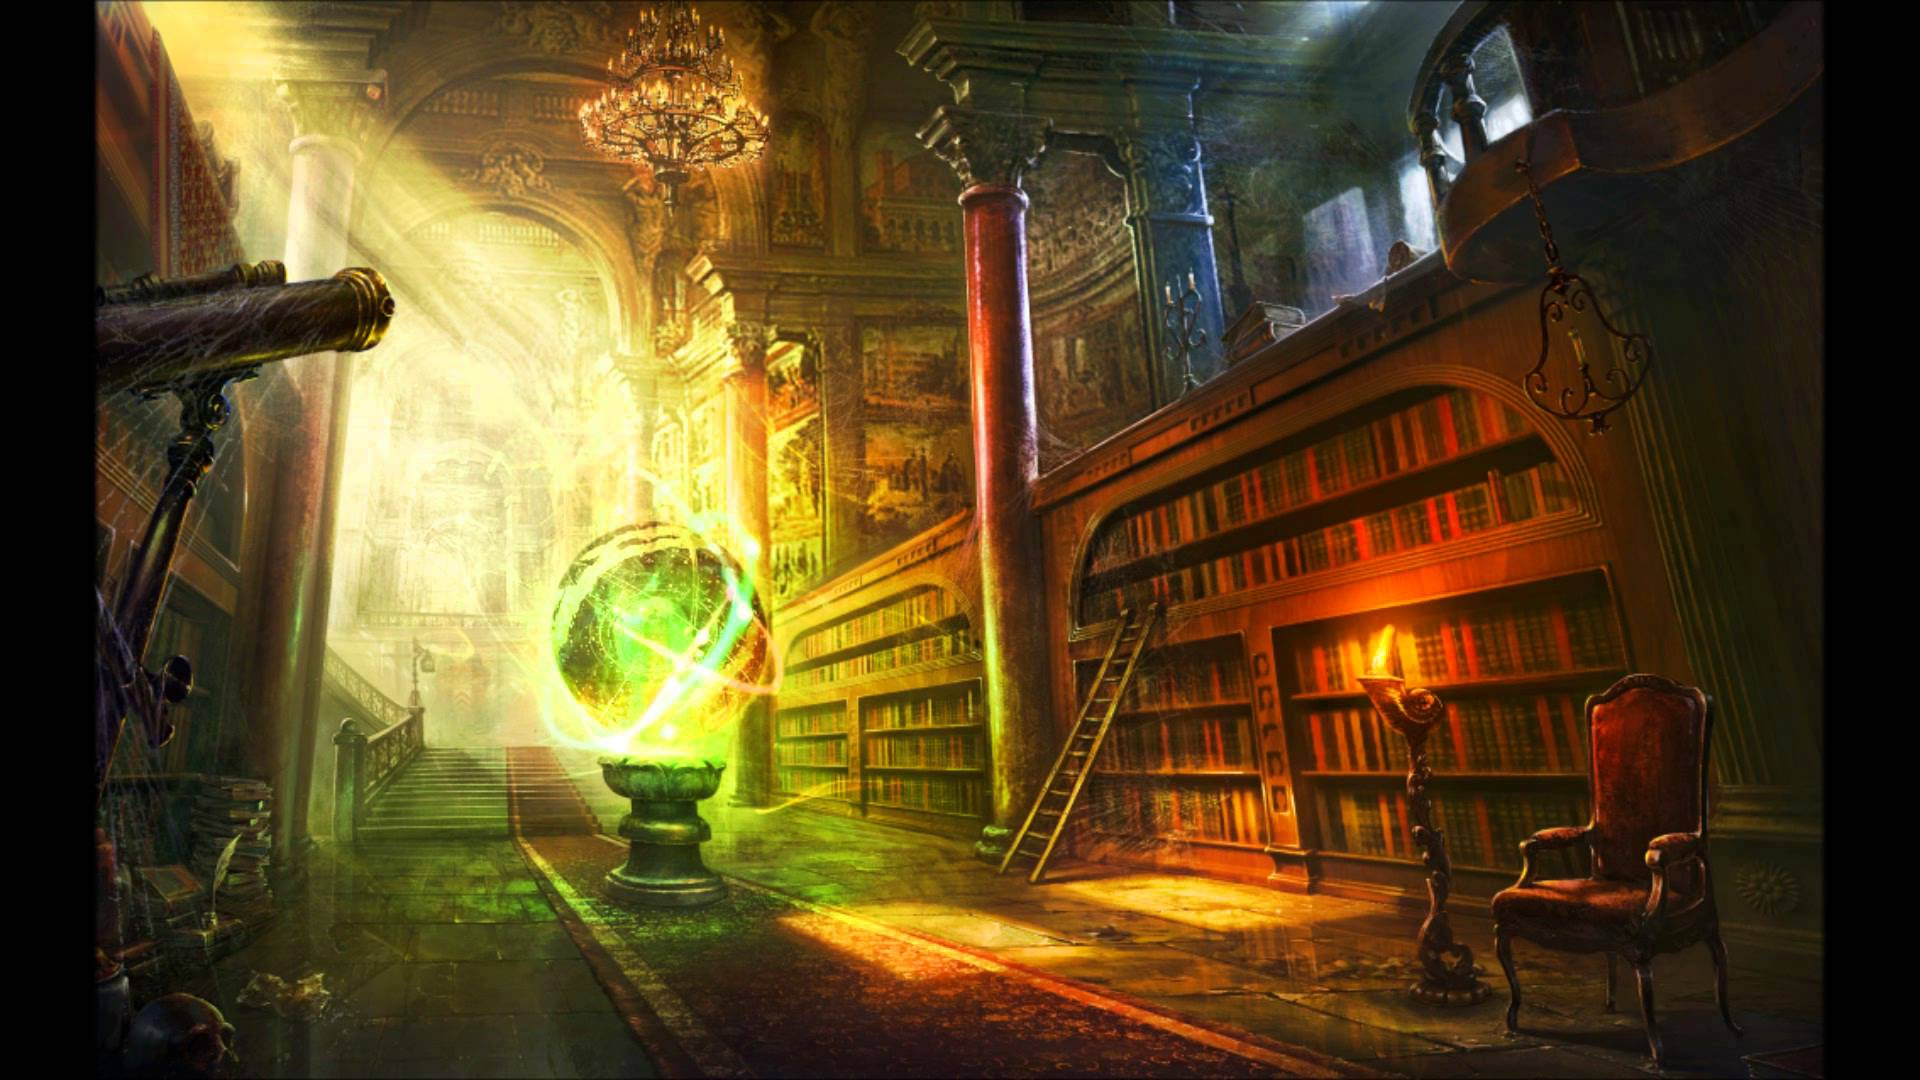 Best 56 Spellbook Wallpaper on HipWallpaper Spellbook Wallpaper 1920x1080